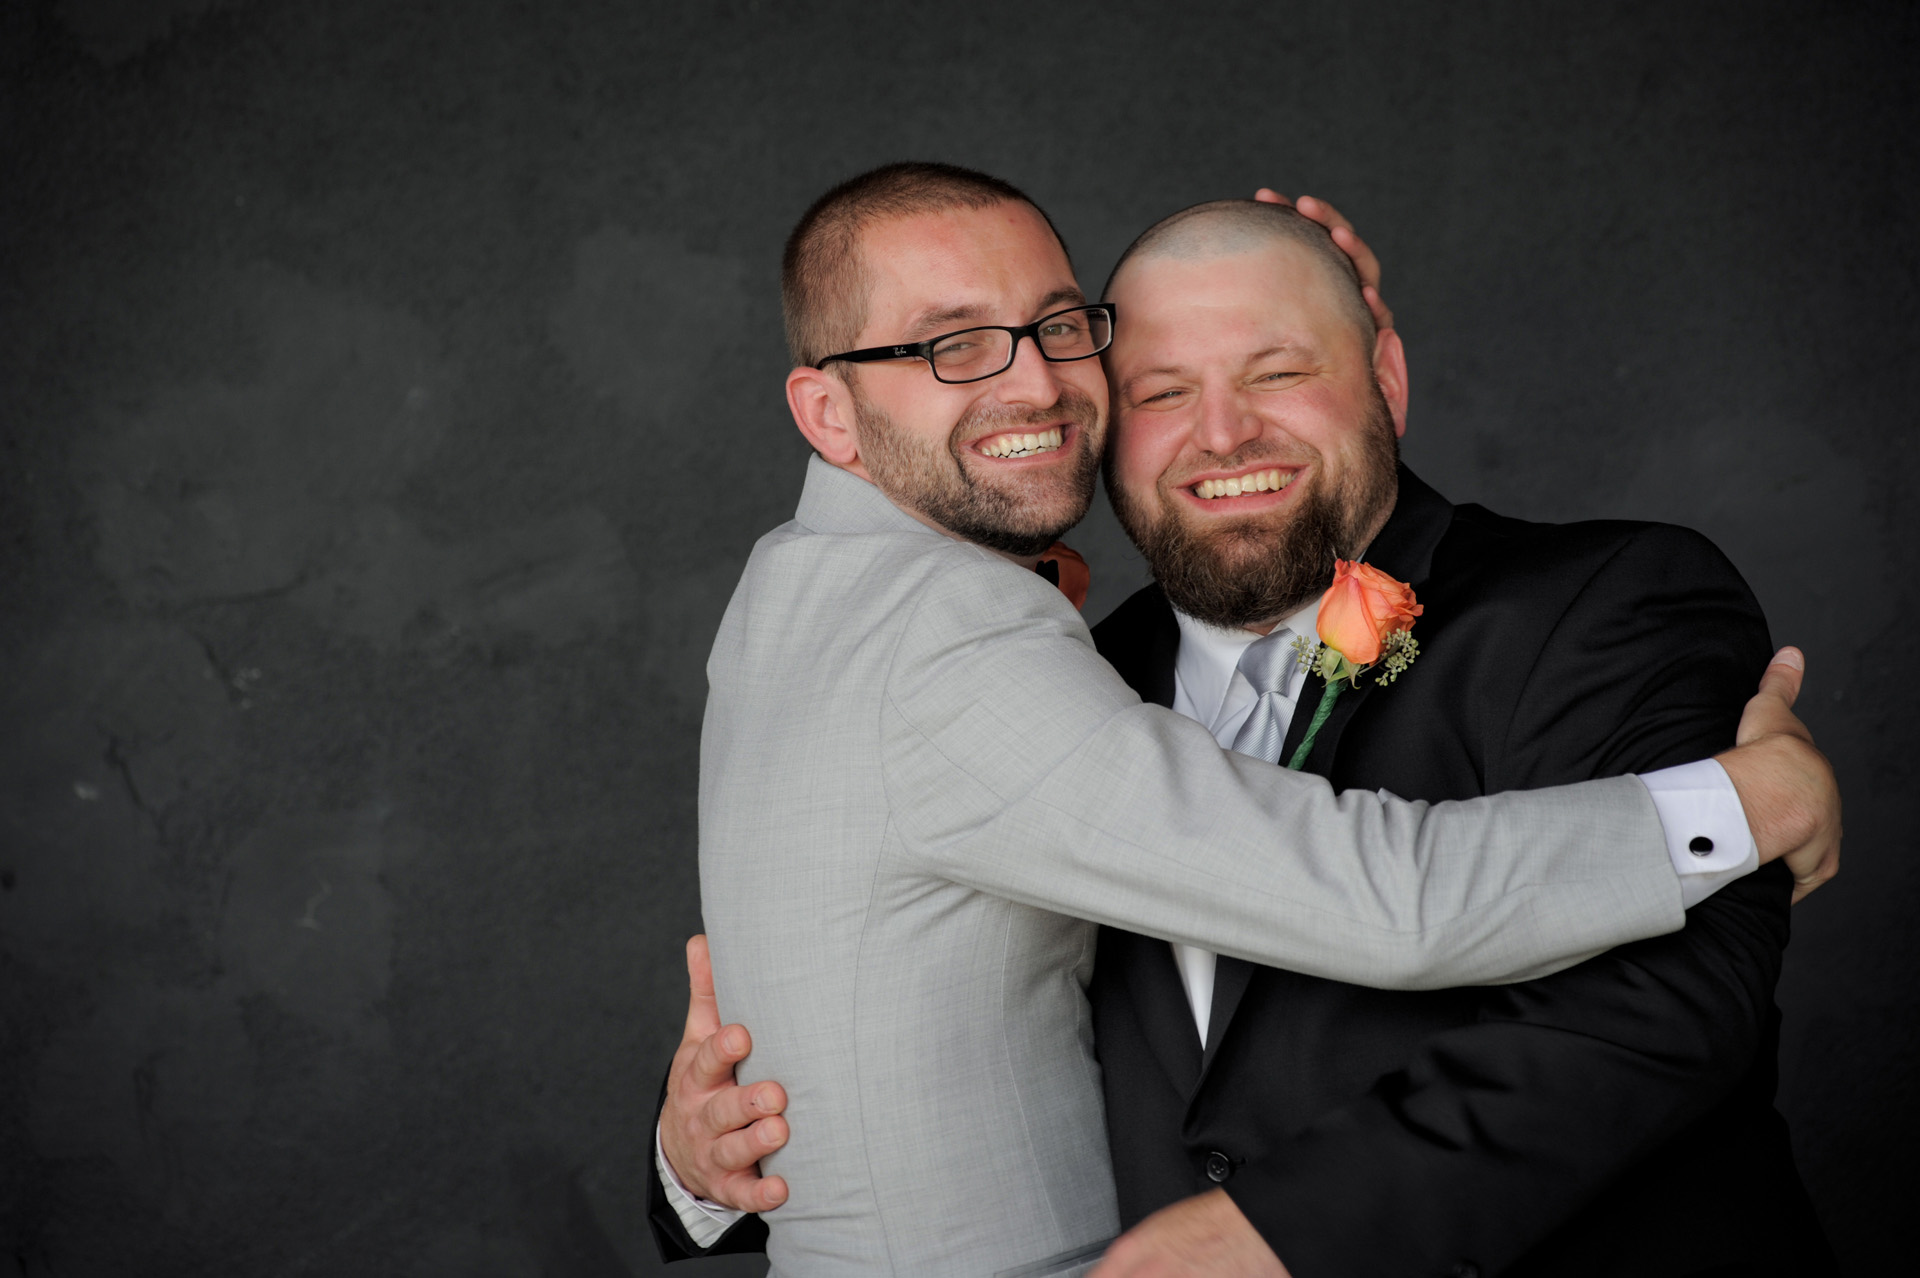 A family oriented wedding in Michigan features a groom and his brother goofing around during wedding party photos in Macomb County in Sterling Heights formerly known as the Sterling Inn.